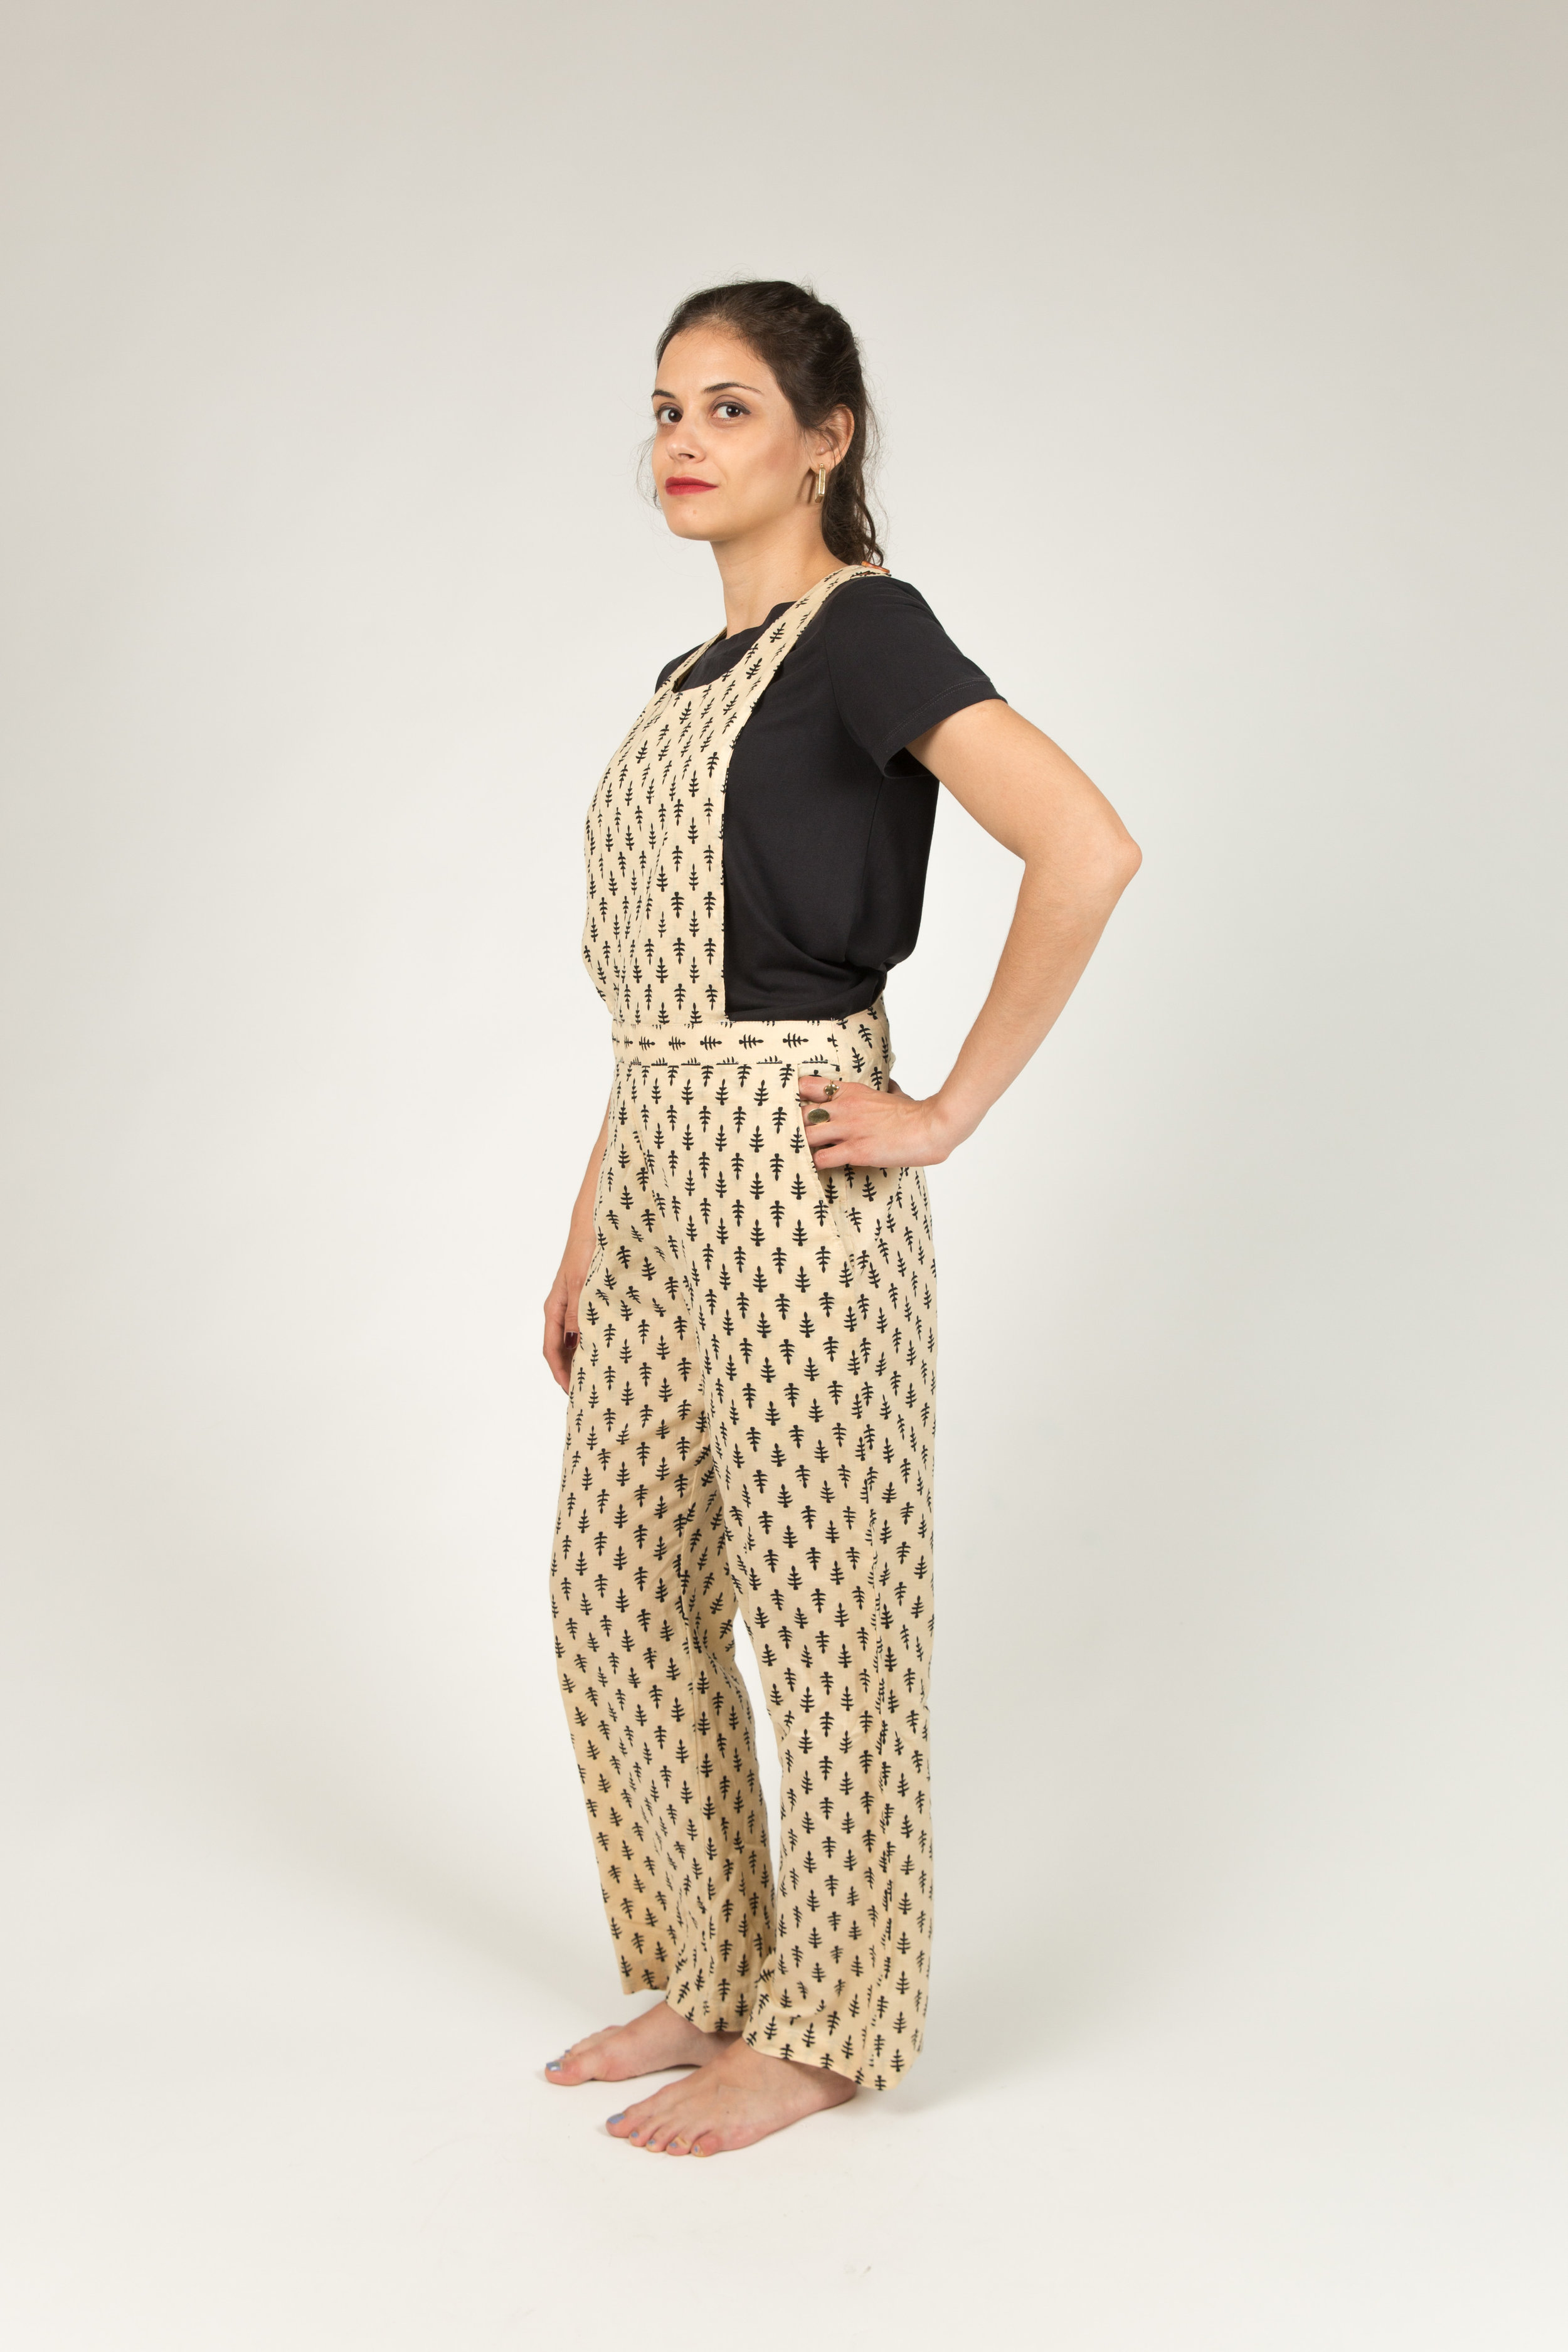 BECKY_BLACK_WHITE_OVERALL_CHARZA